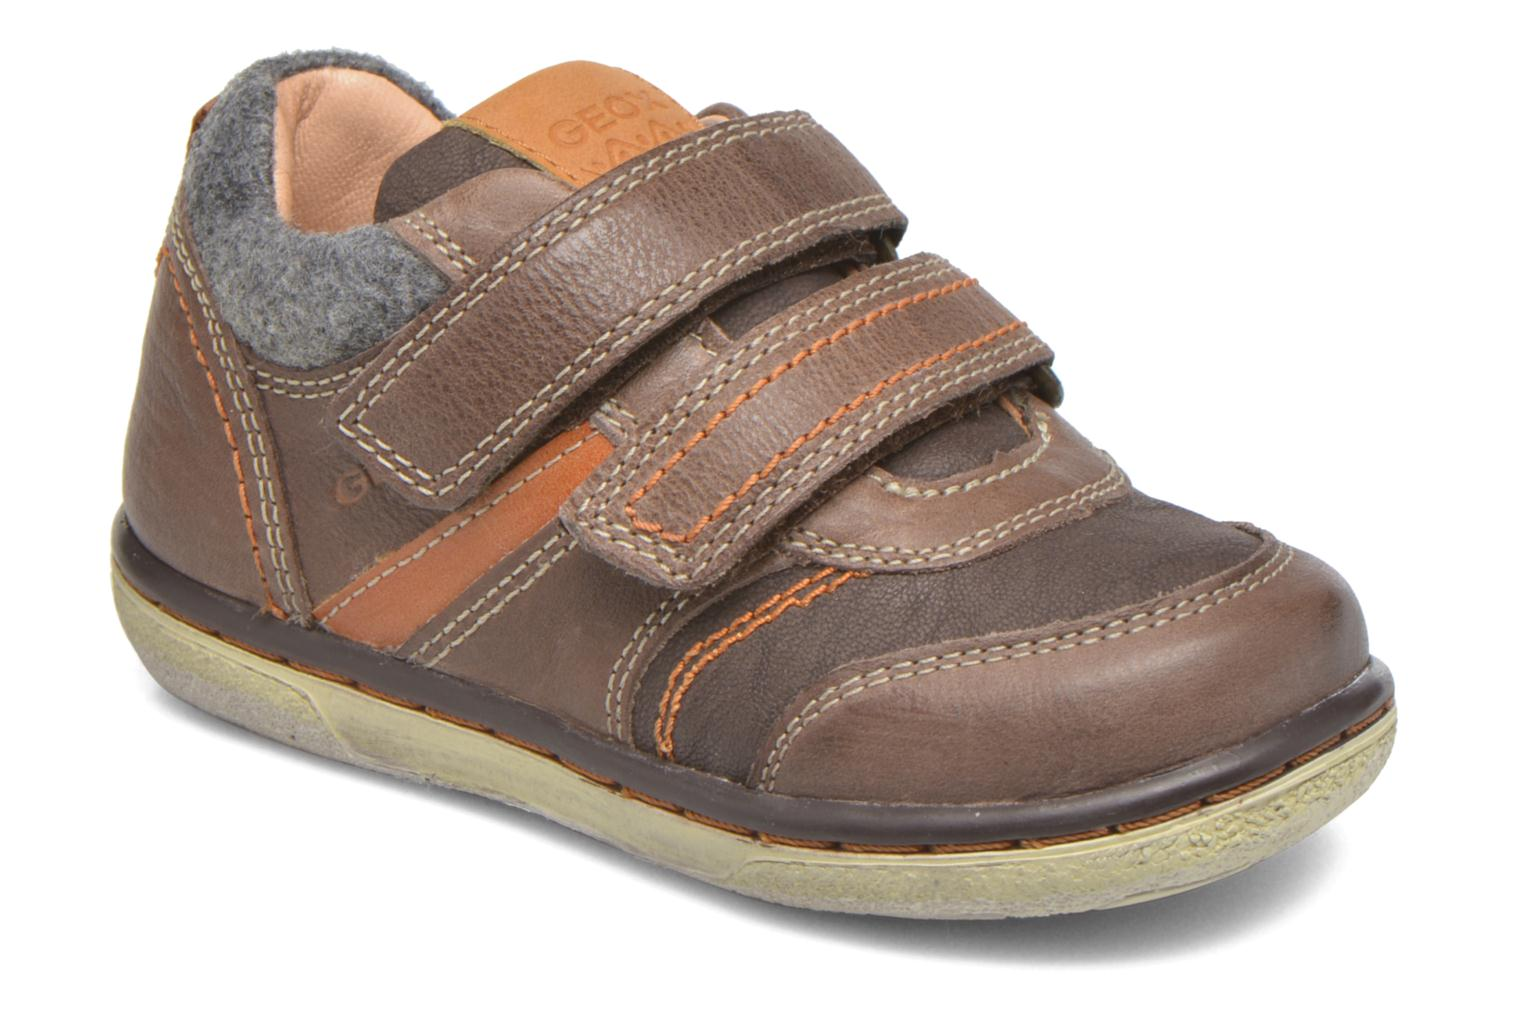 Baskets Geox Baby Flick Boy B5437I Marron vue détail/paire